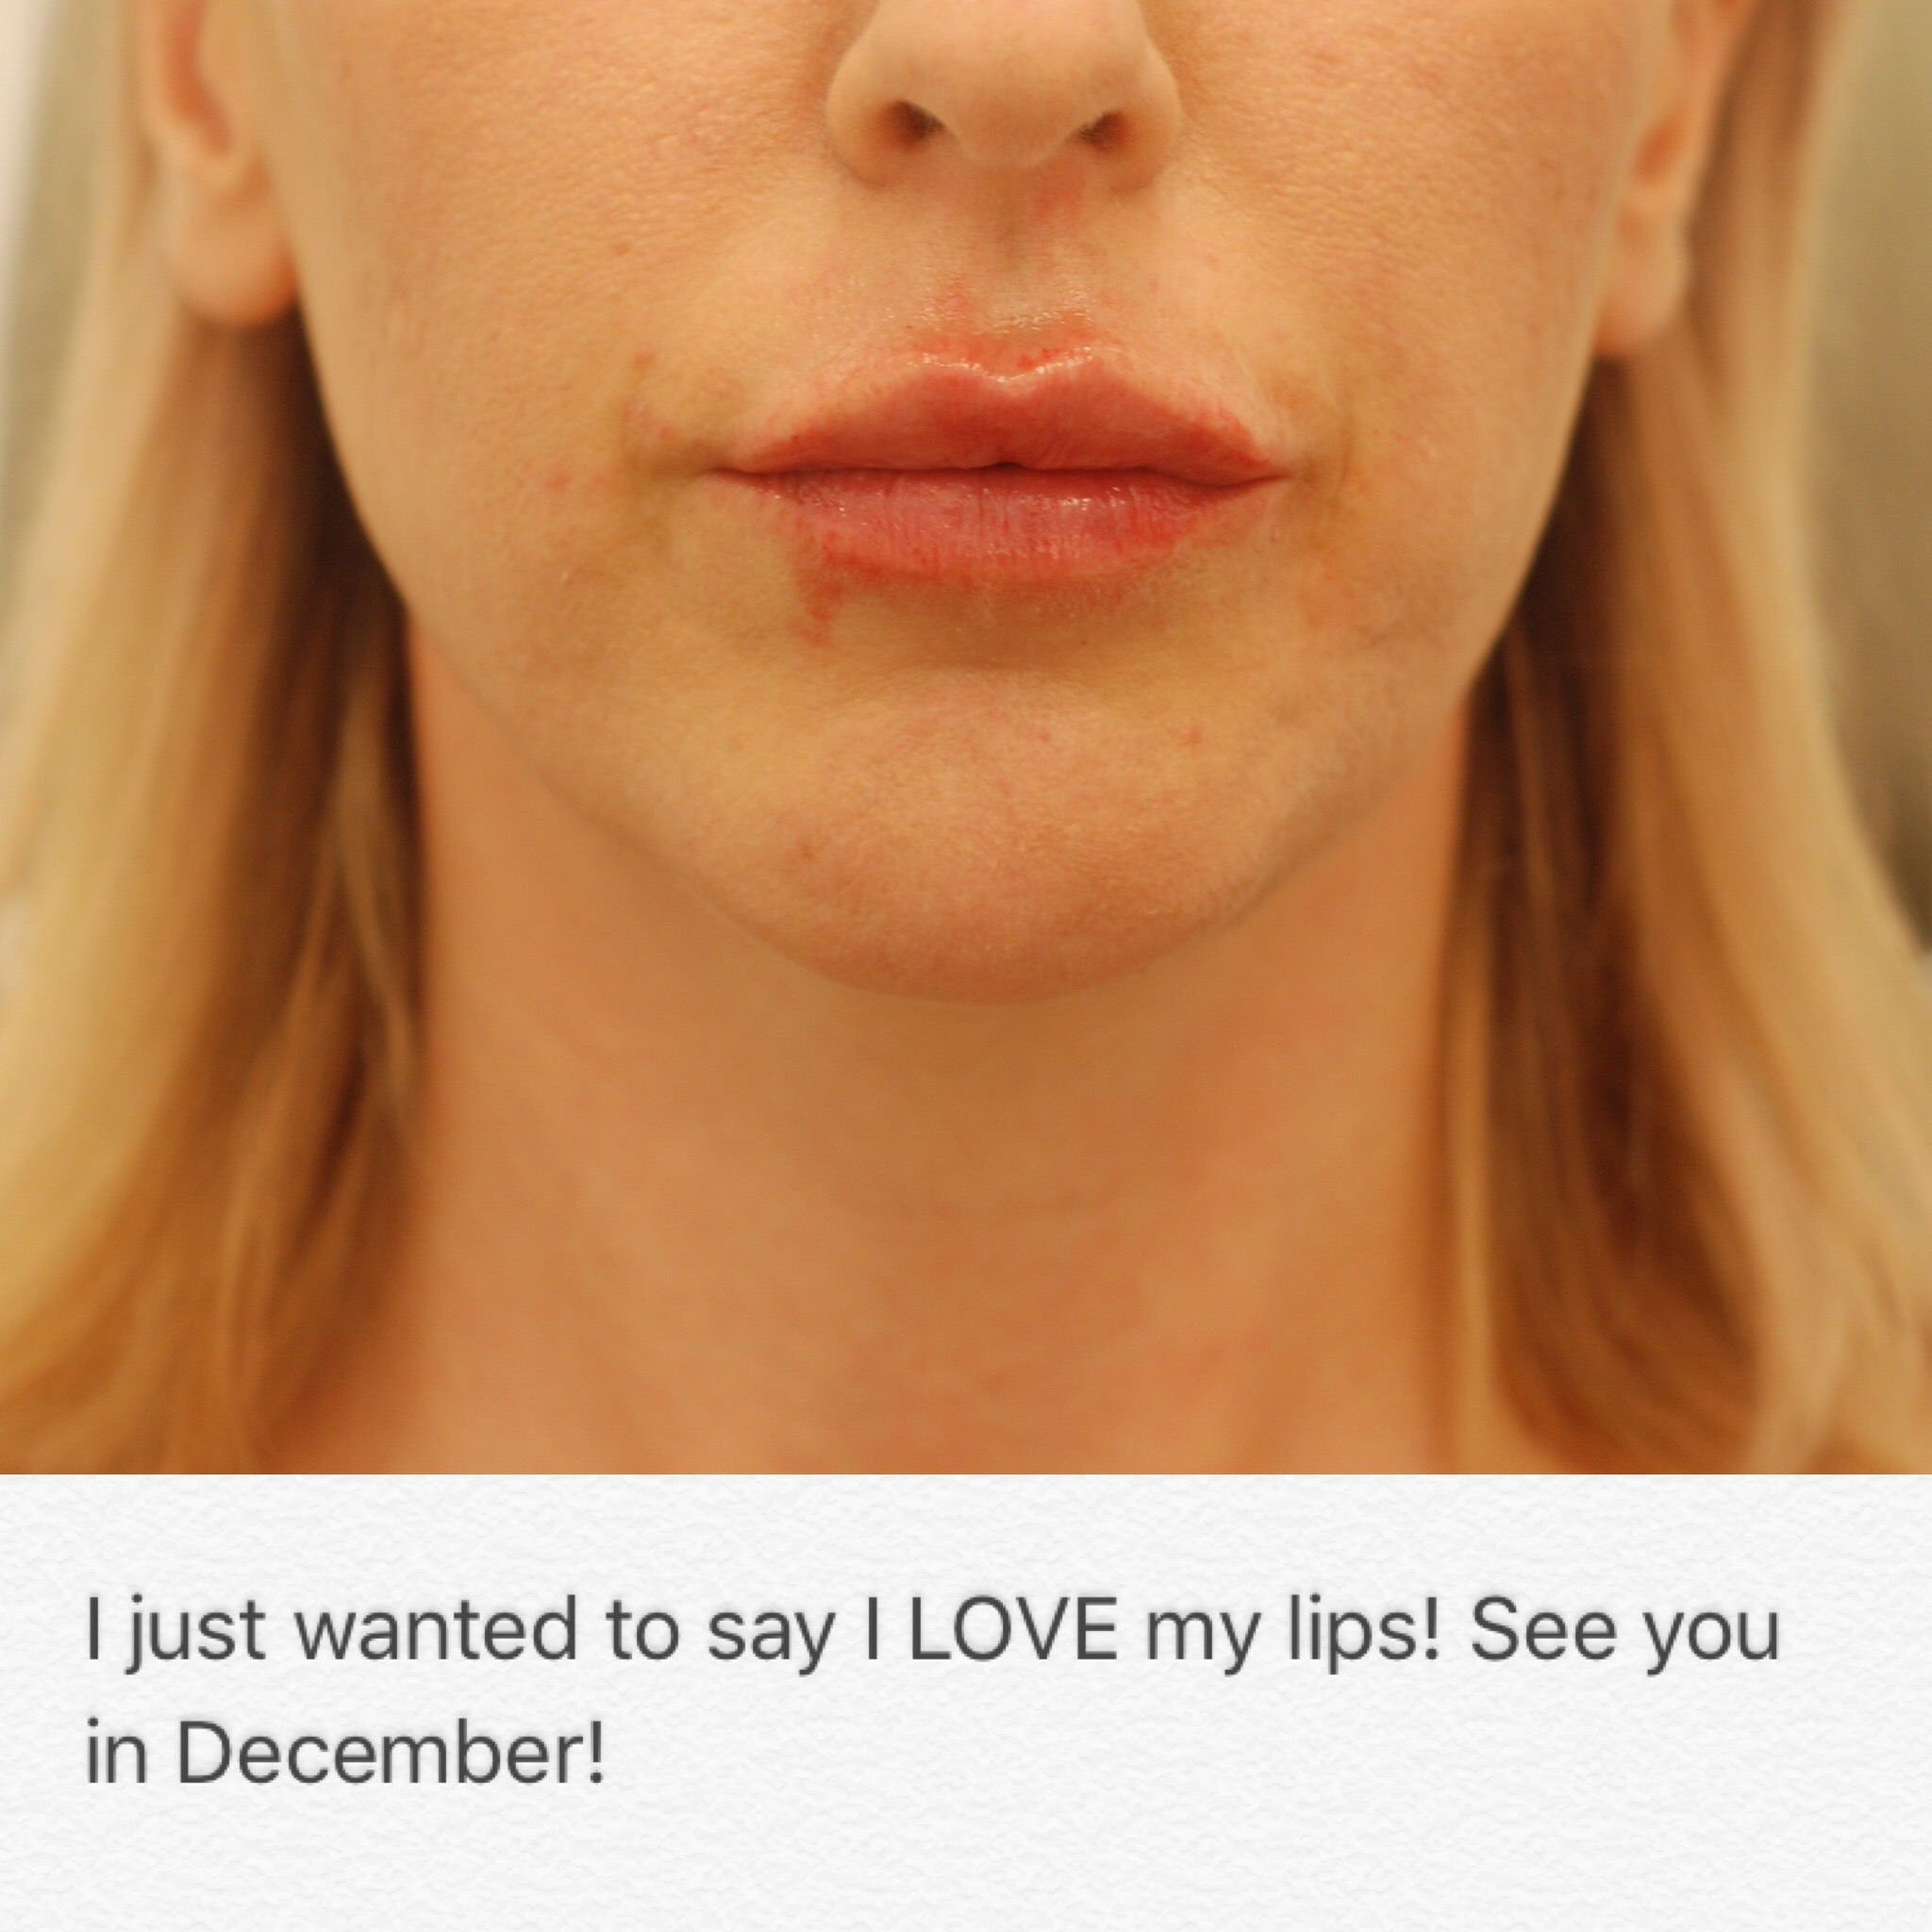 Message from a lip augmentation patient, 10/2016